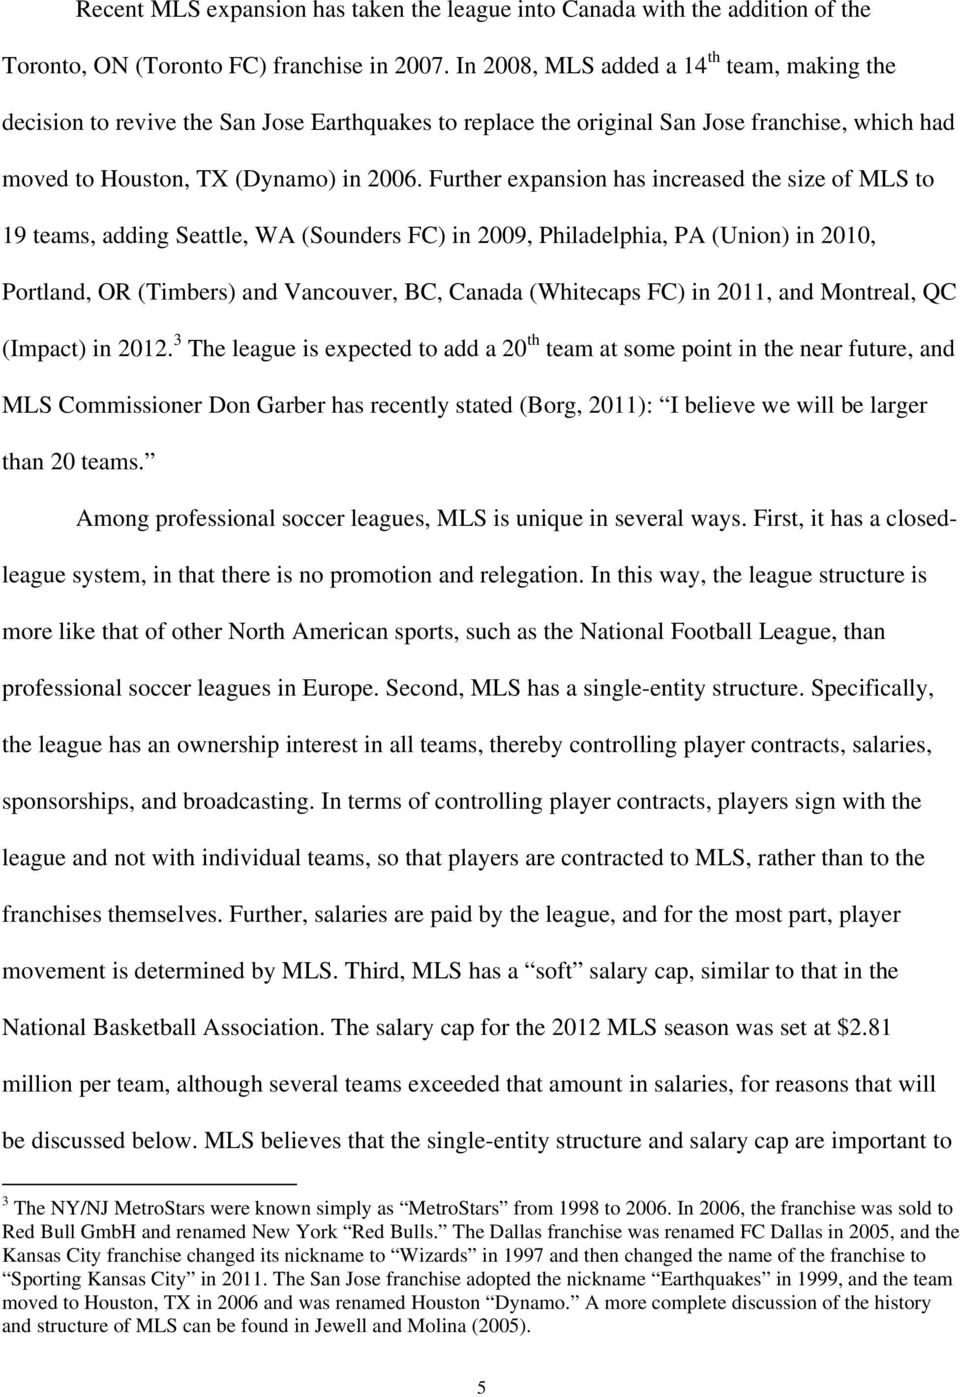 Further expansion has increased the size of MLS to 19 teams, adding Seattle, WA (Sounders FC) in 2009, Philadelphia, PA (Union) in 2010, Portland, OR (Timbers) and Vancouver, BC, Canada (Whitecaps